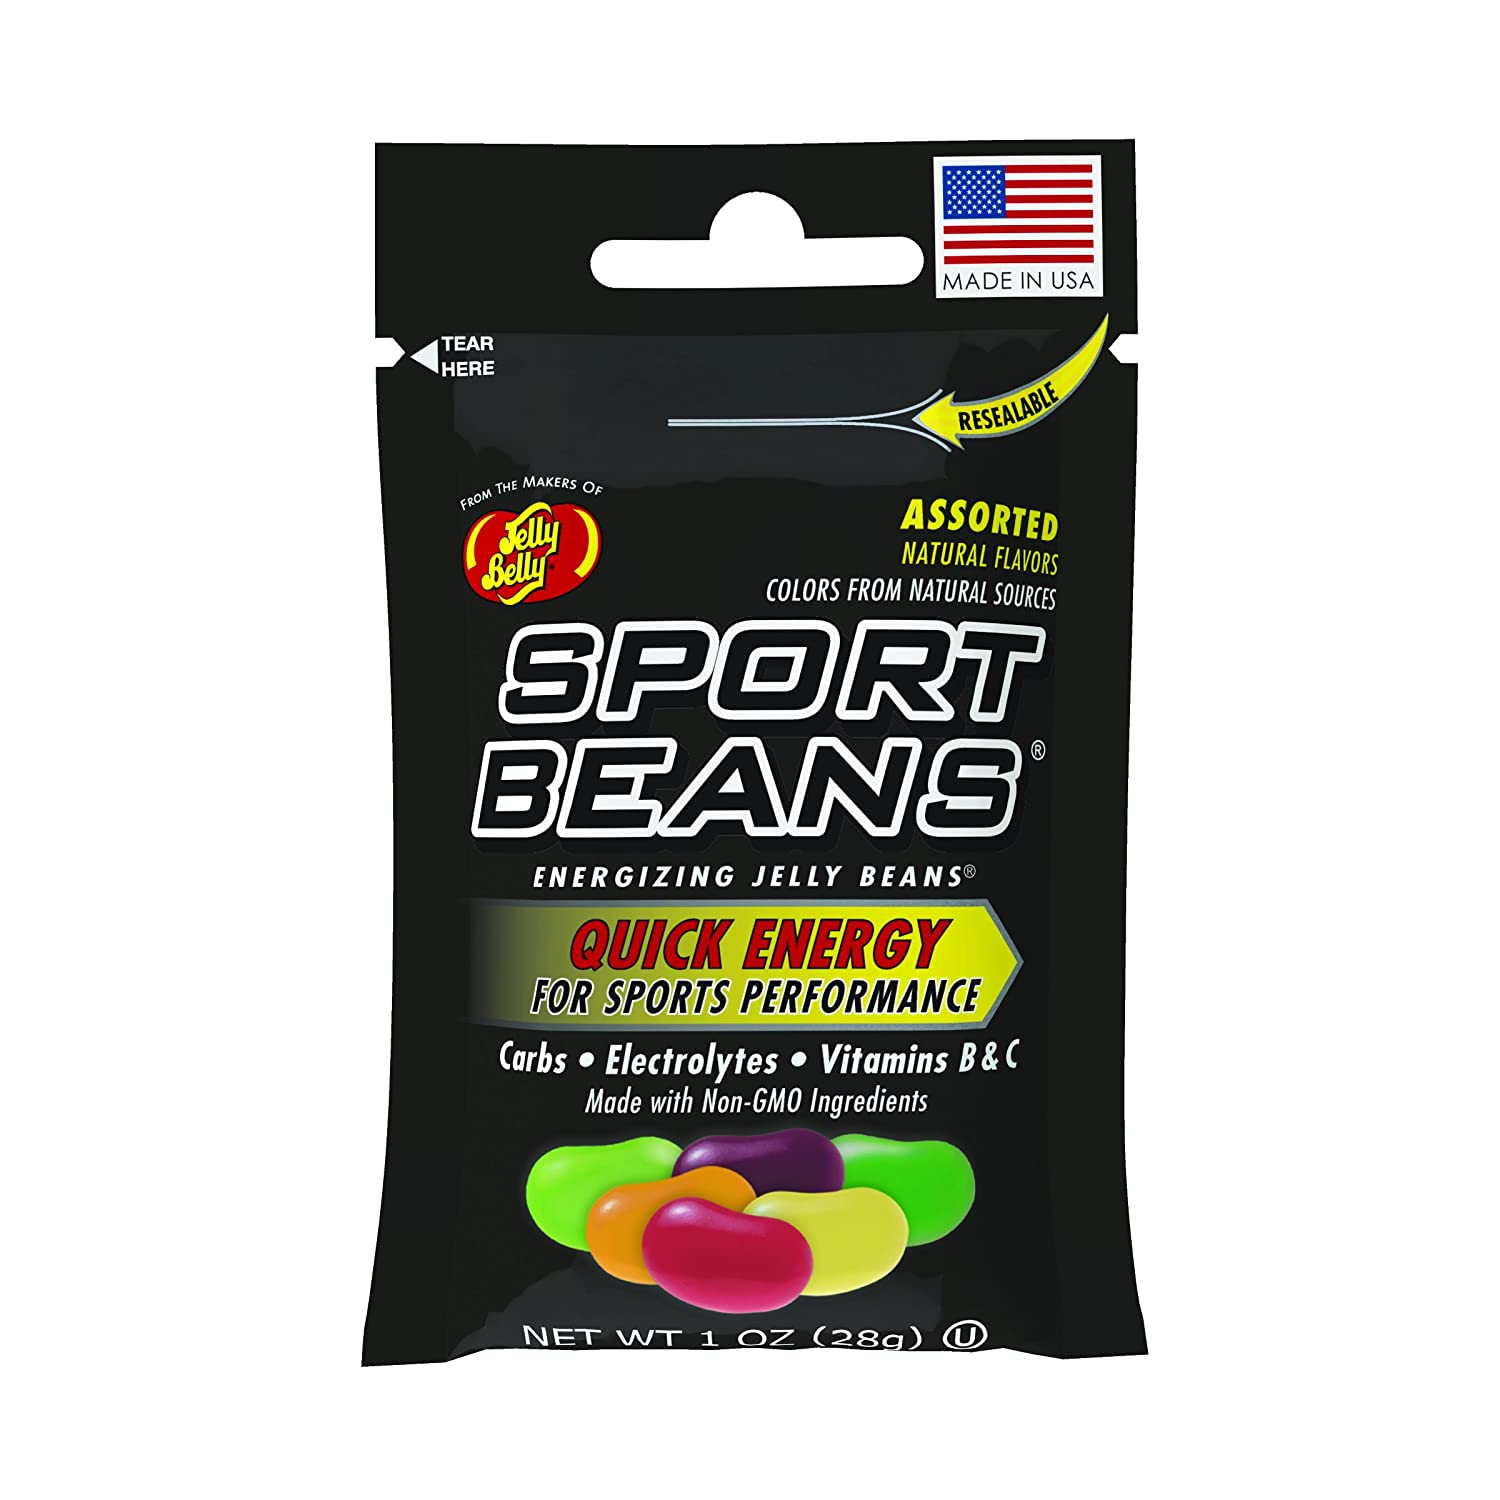 Jelly Belly Sport Beans - Energizing Jelly Beans - Assorted Flavors, 24 x 1 Ounce Bags